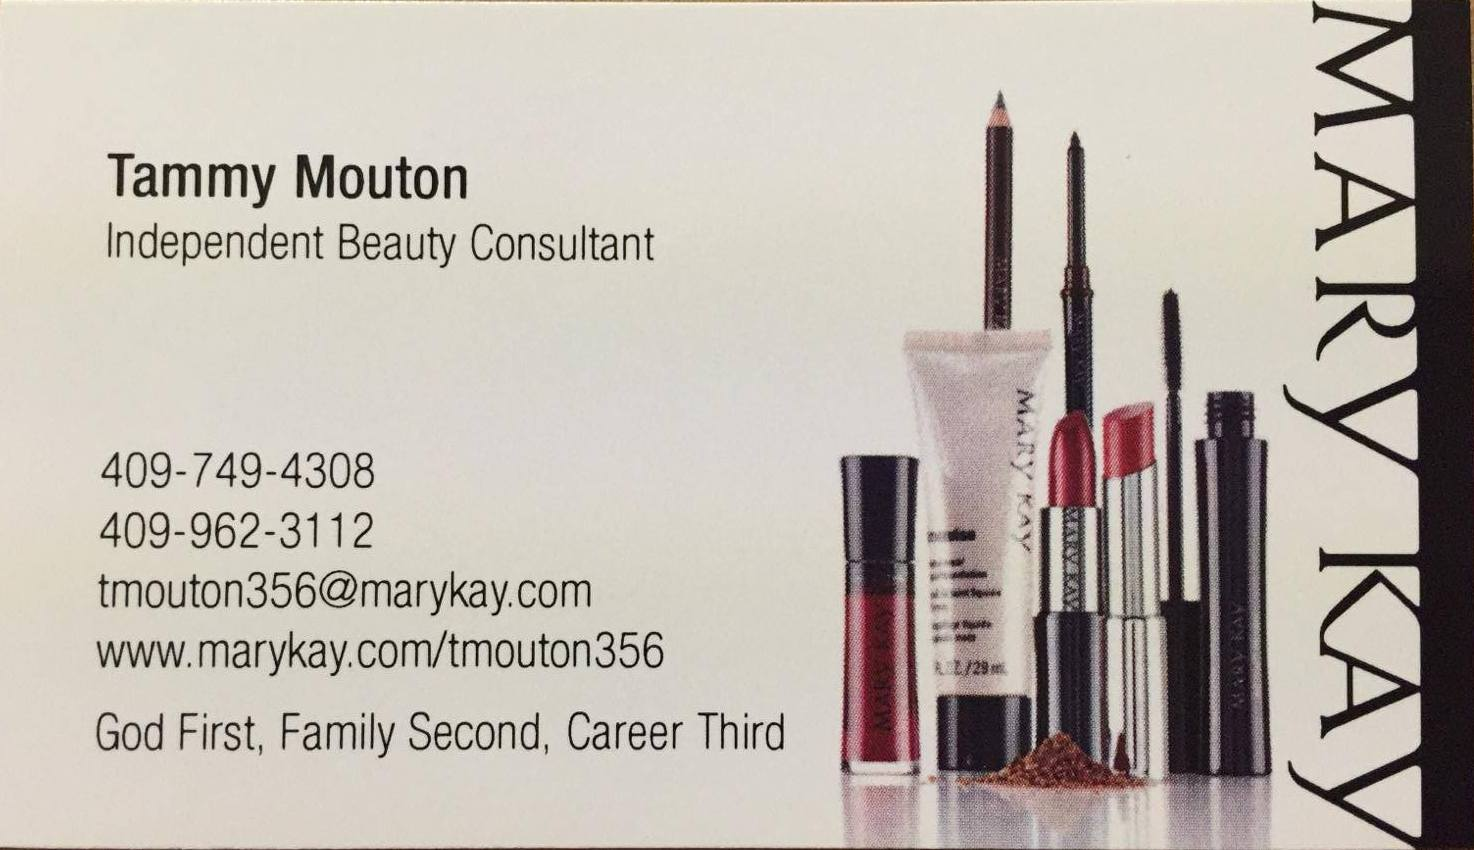 Tammy Mouton Supports Stay At Home Moms As An Independent Mary Kay Beauty Consultant